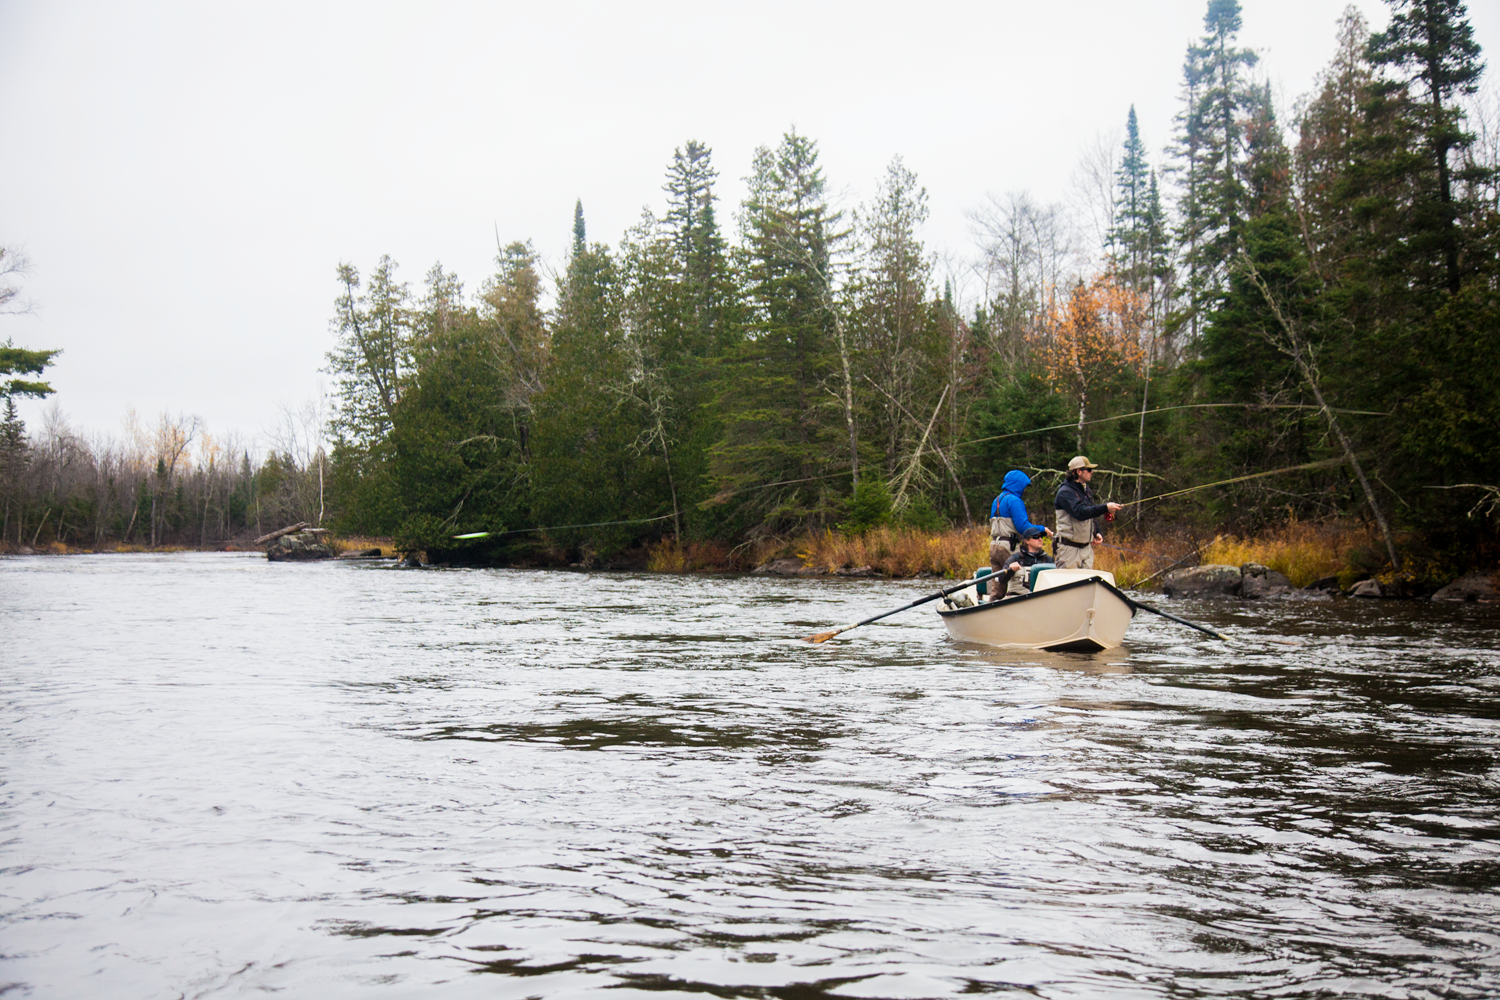 A drift boat trip down a local musky river is a great way to spend a crisp October day.